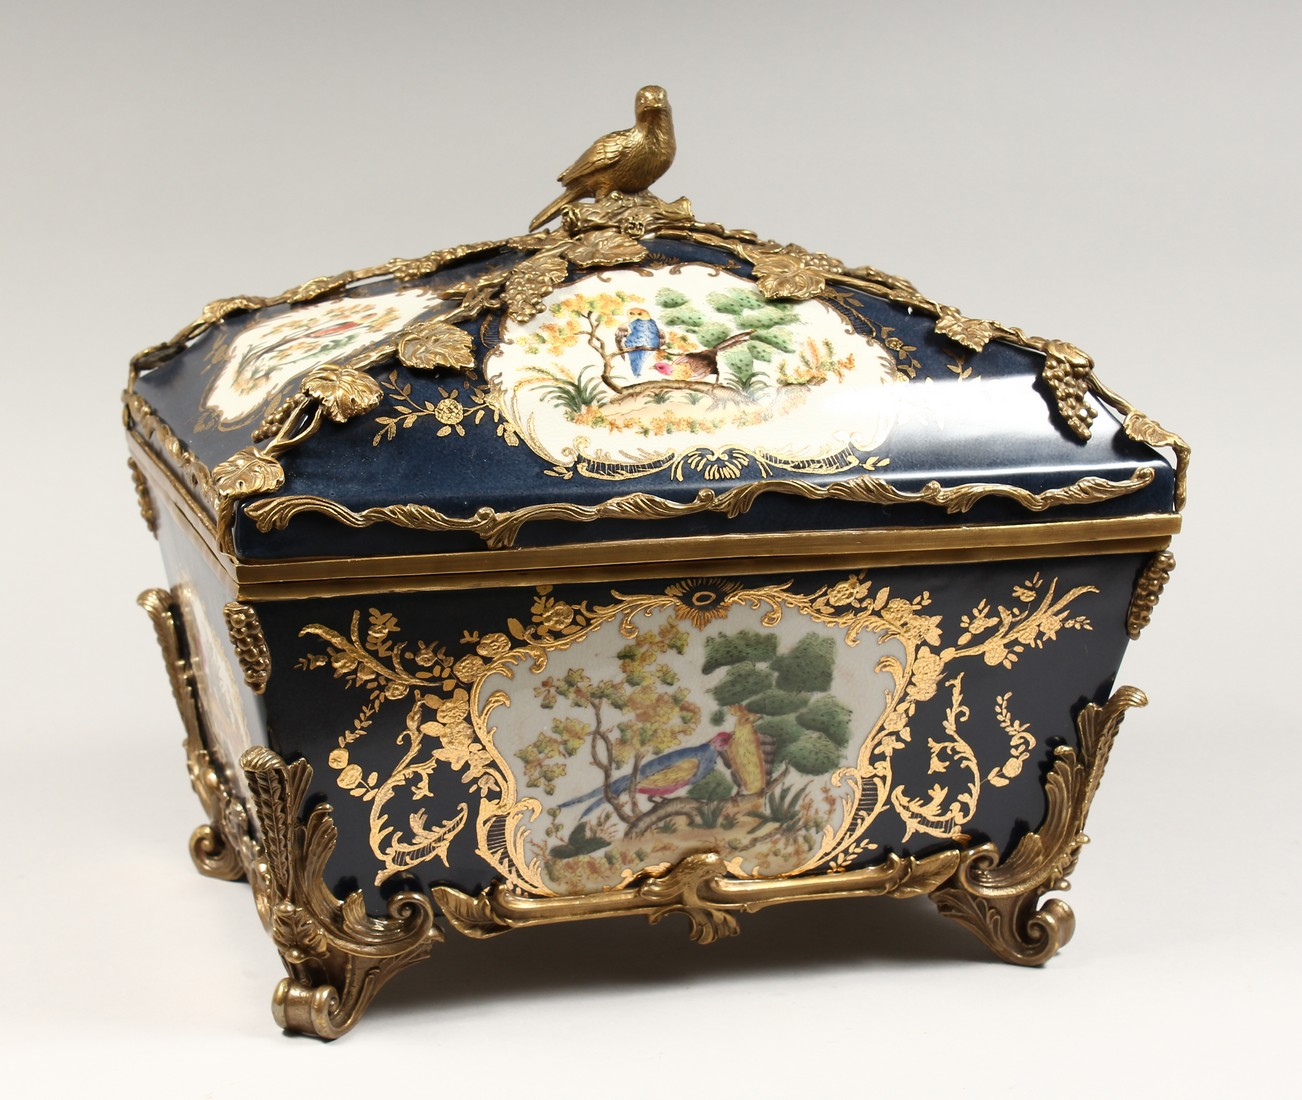 A DECORATIVE PORCELAIN AND ORMOLU MOUNTED SEVRES STYLE CASKET AND COVER. 15ins long